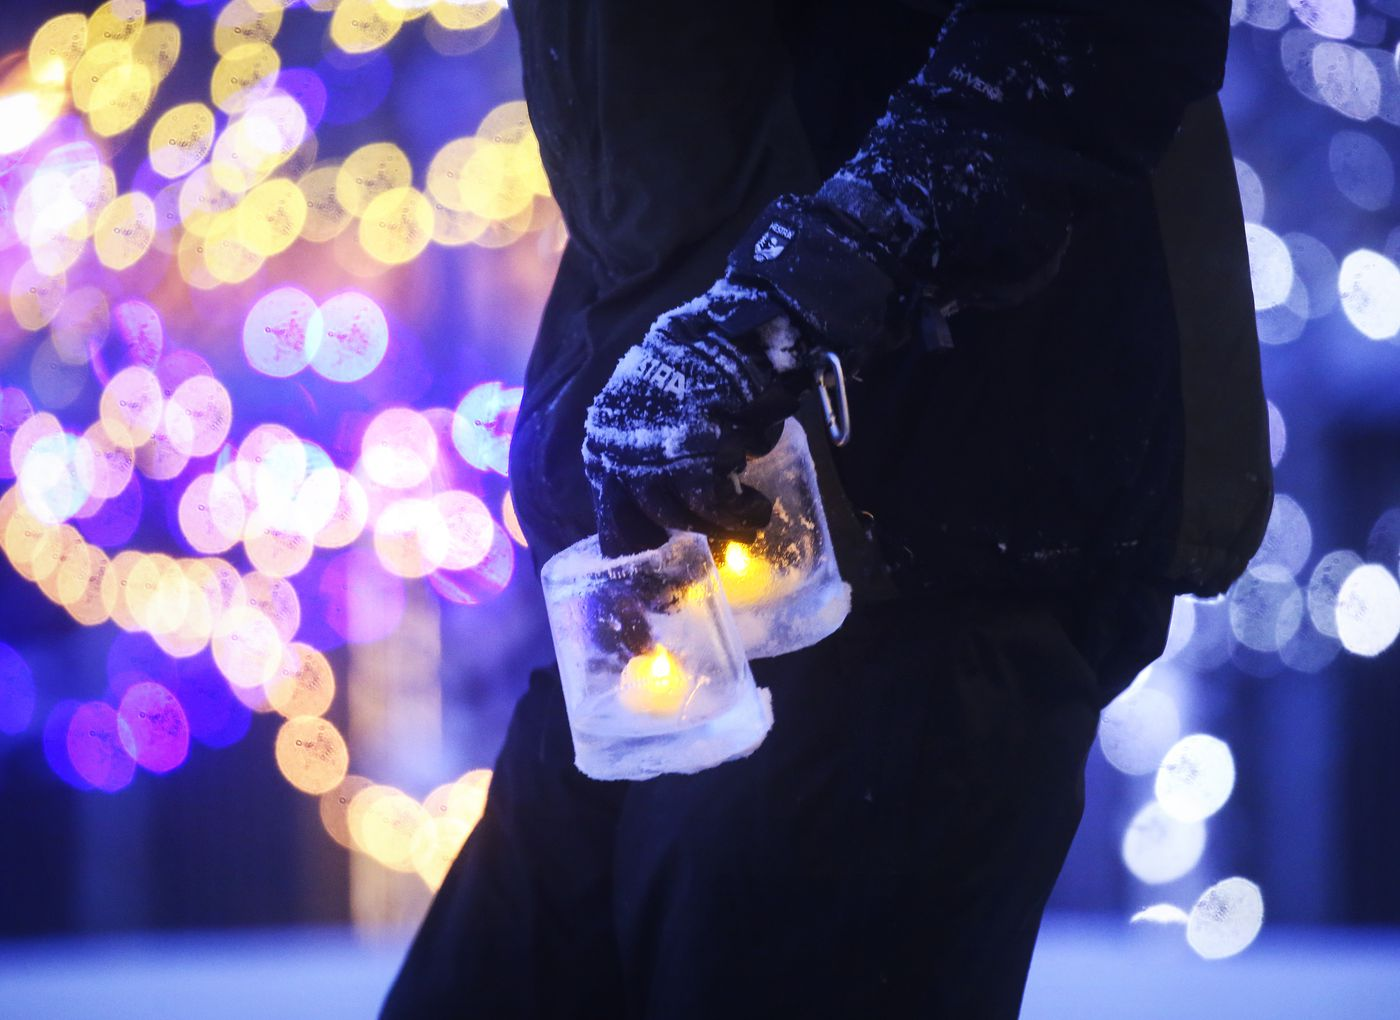 DECEMBER 20. Ryan Kenny, the Anchorage Museum Deputy Director of Exhibitions and Program Operations, carries two ice luminarias he made onto the front lawn of the museum in downtown Anchorage. (Emily Mesner / ADN)